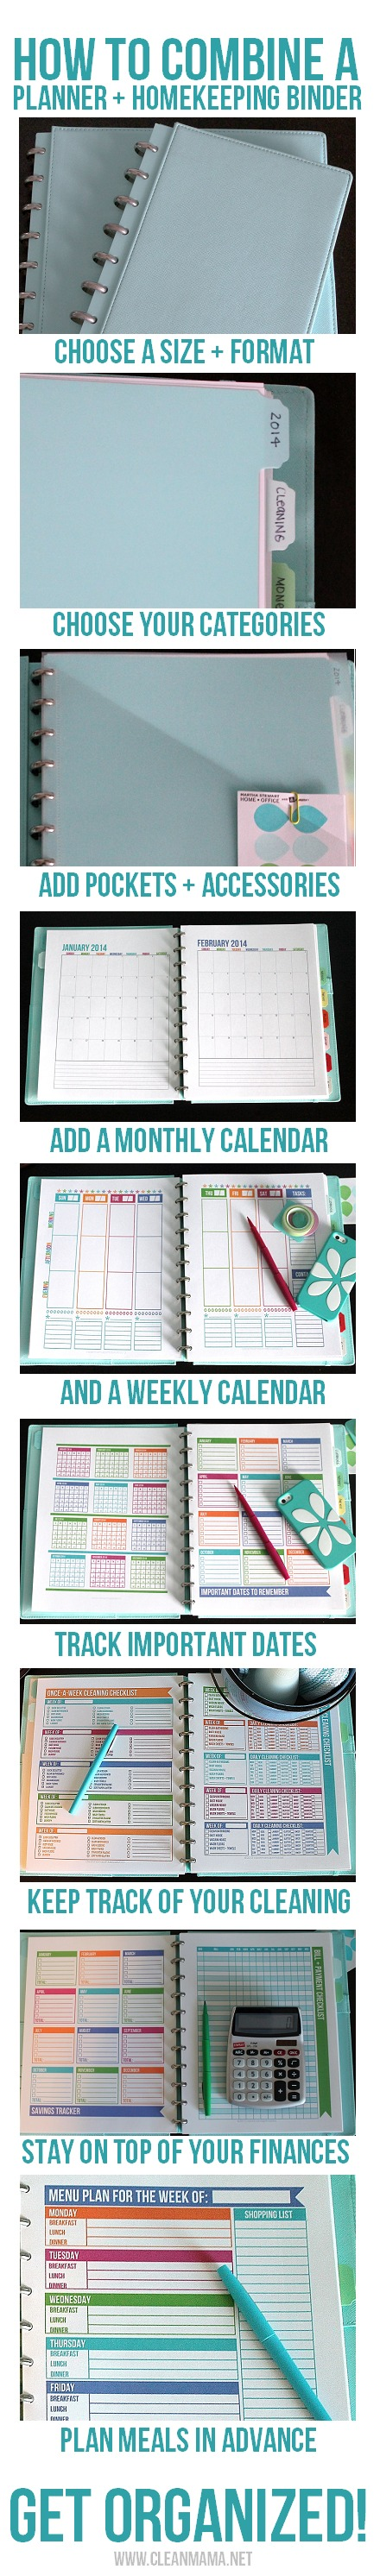 How to Combine a Planner + Homekeeping Binder via Clean Mama